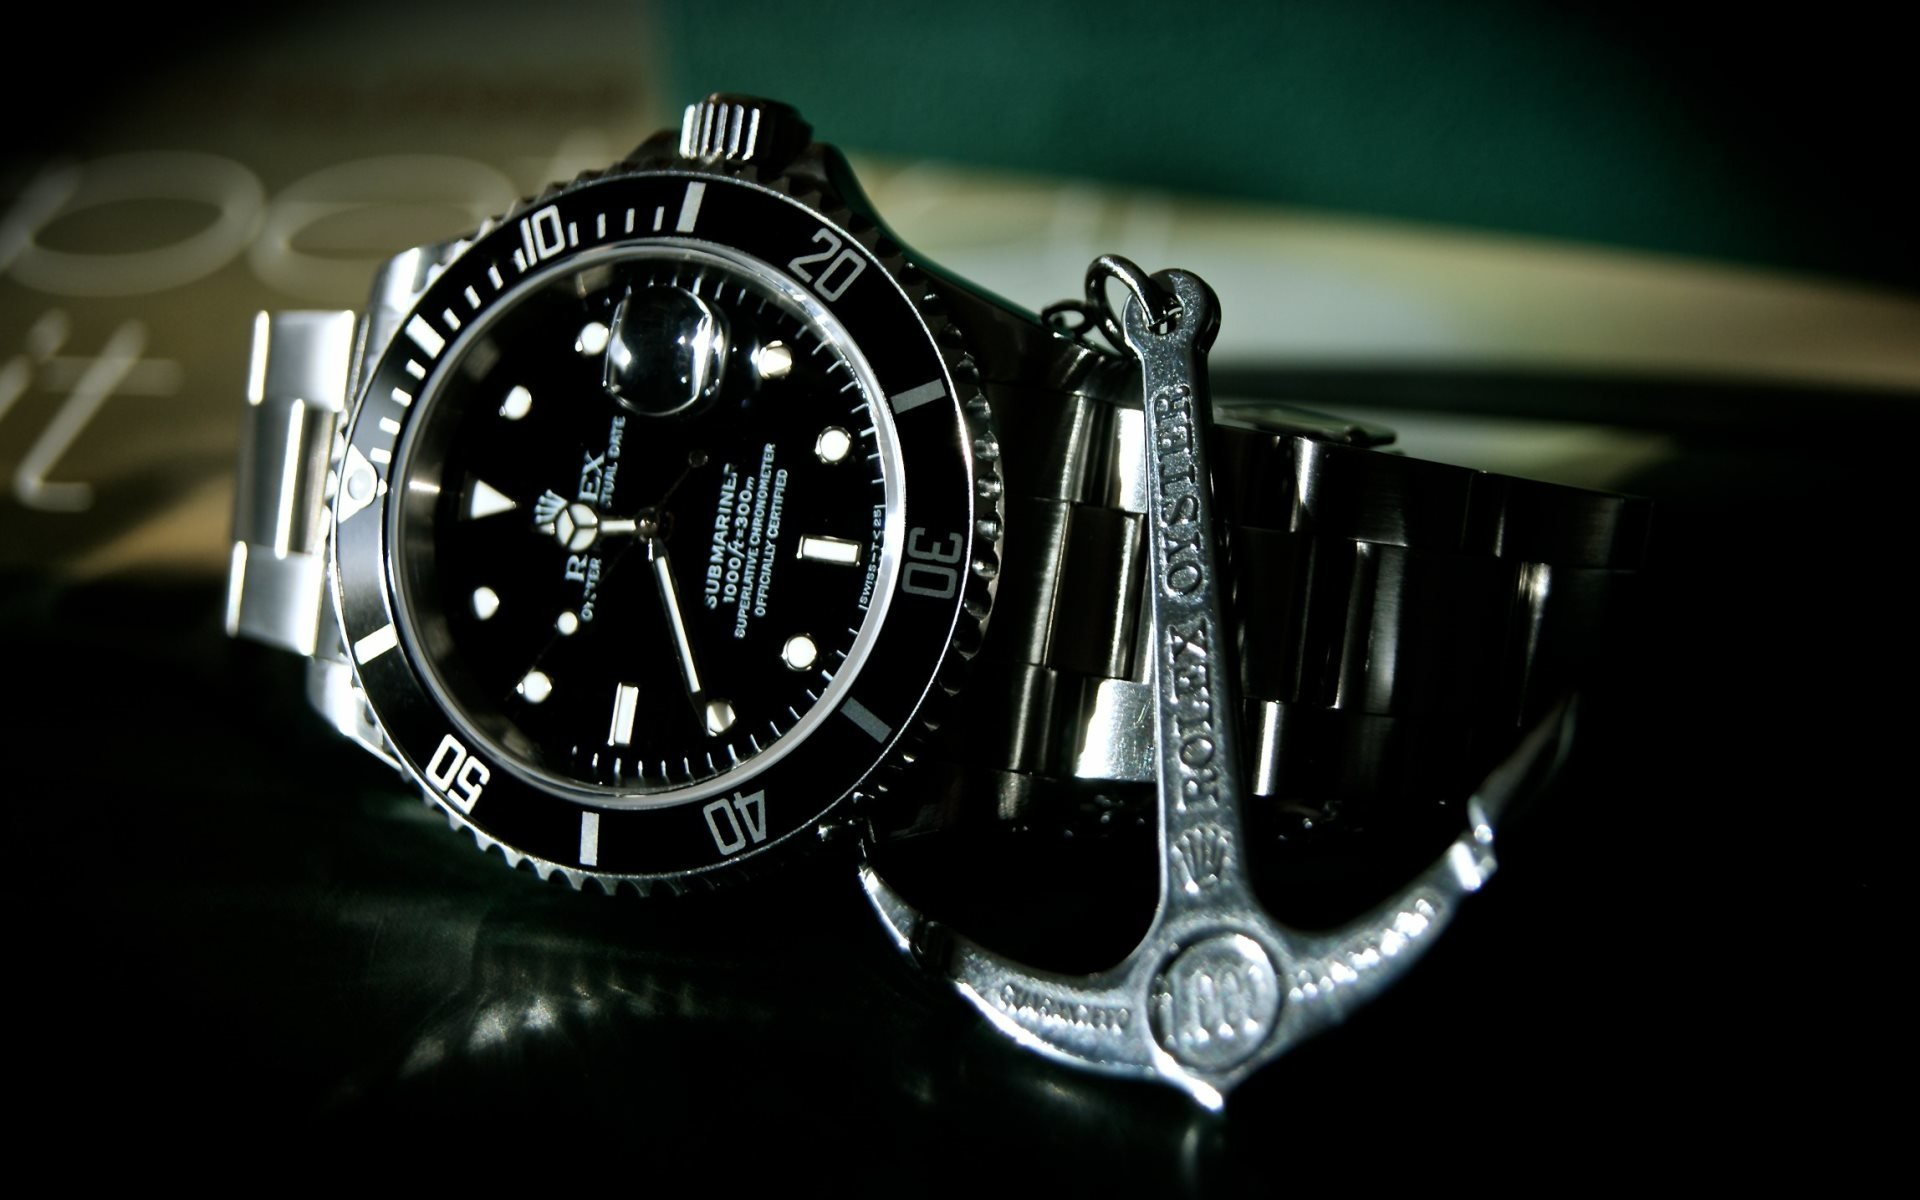 Rolex HD Wallpaper   Background Image   1920x1200   ID 473263     Wallpapers ID 473263